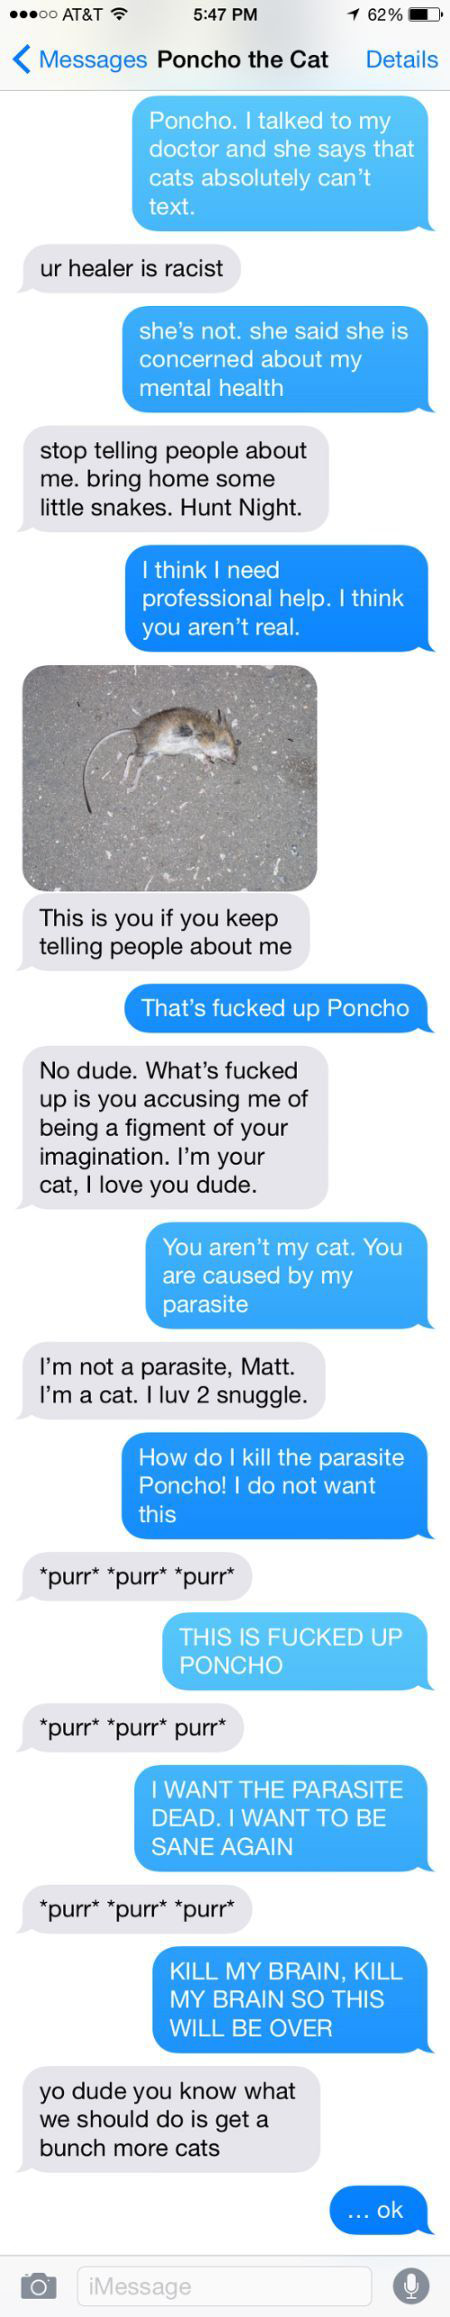 Man Tries To Prove He's Not Insane By Texting With His Cat (4 pics)